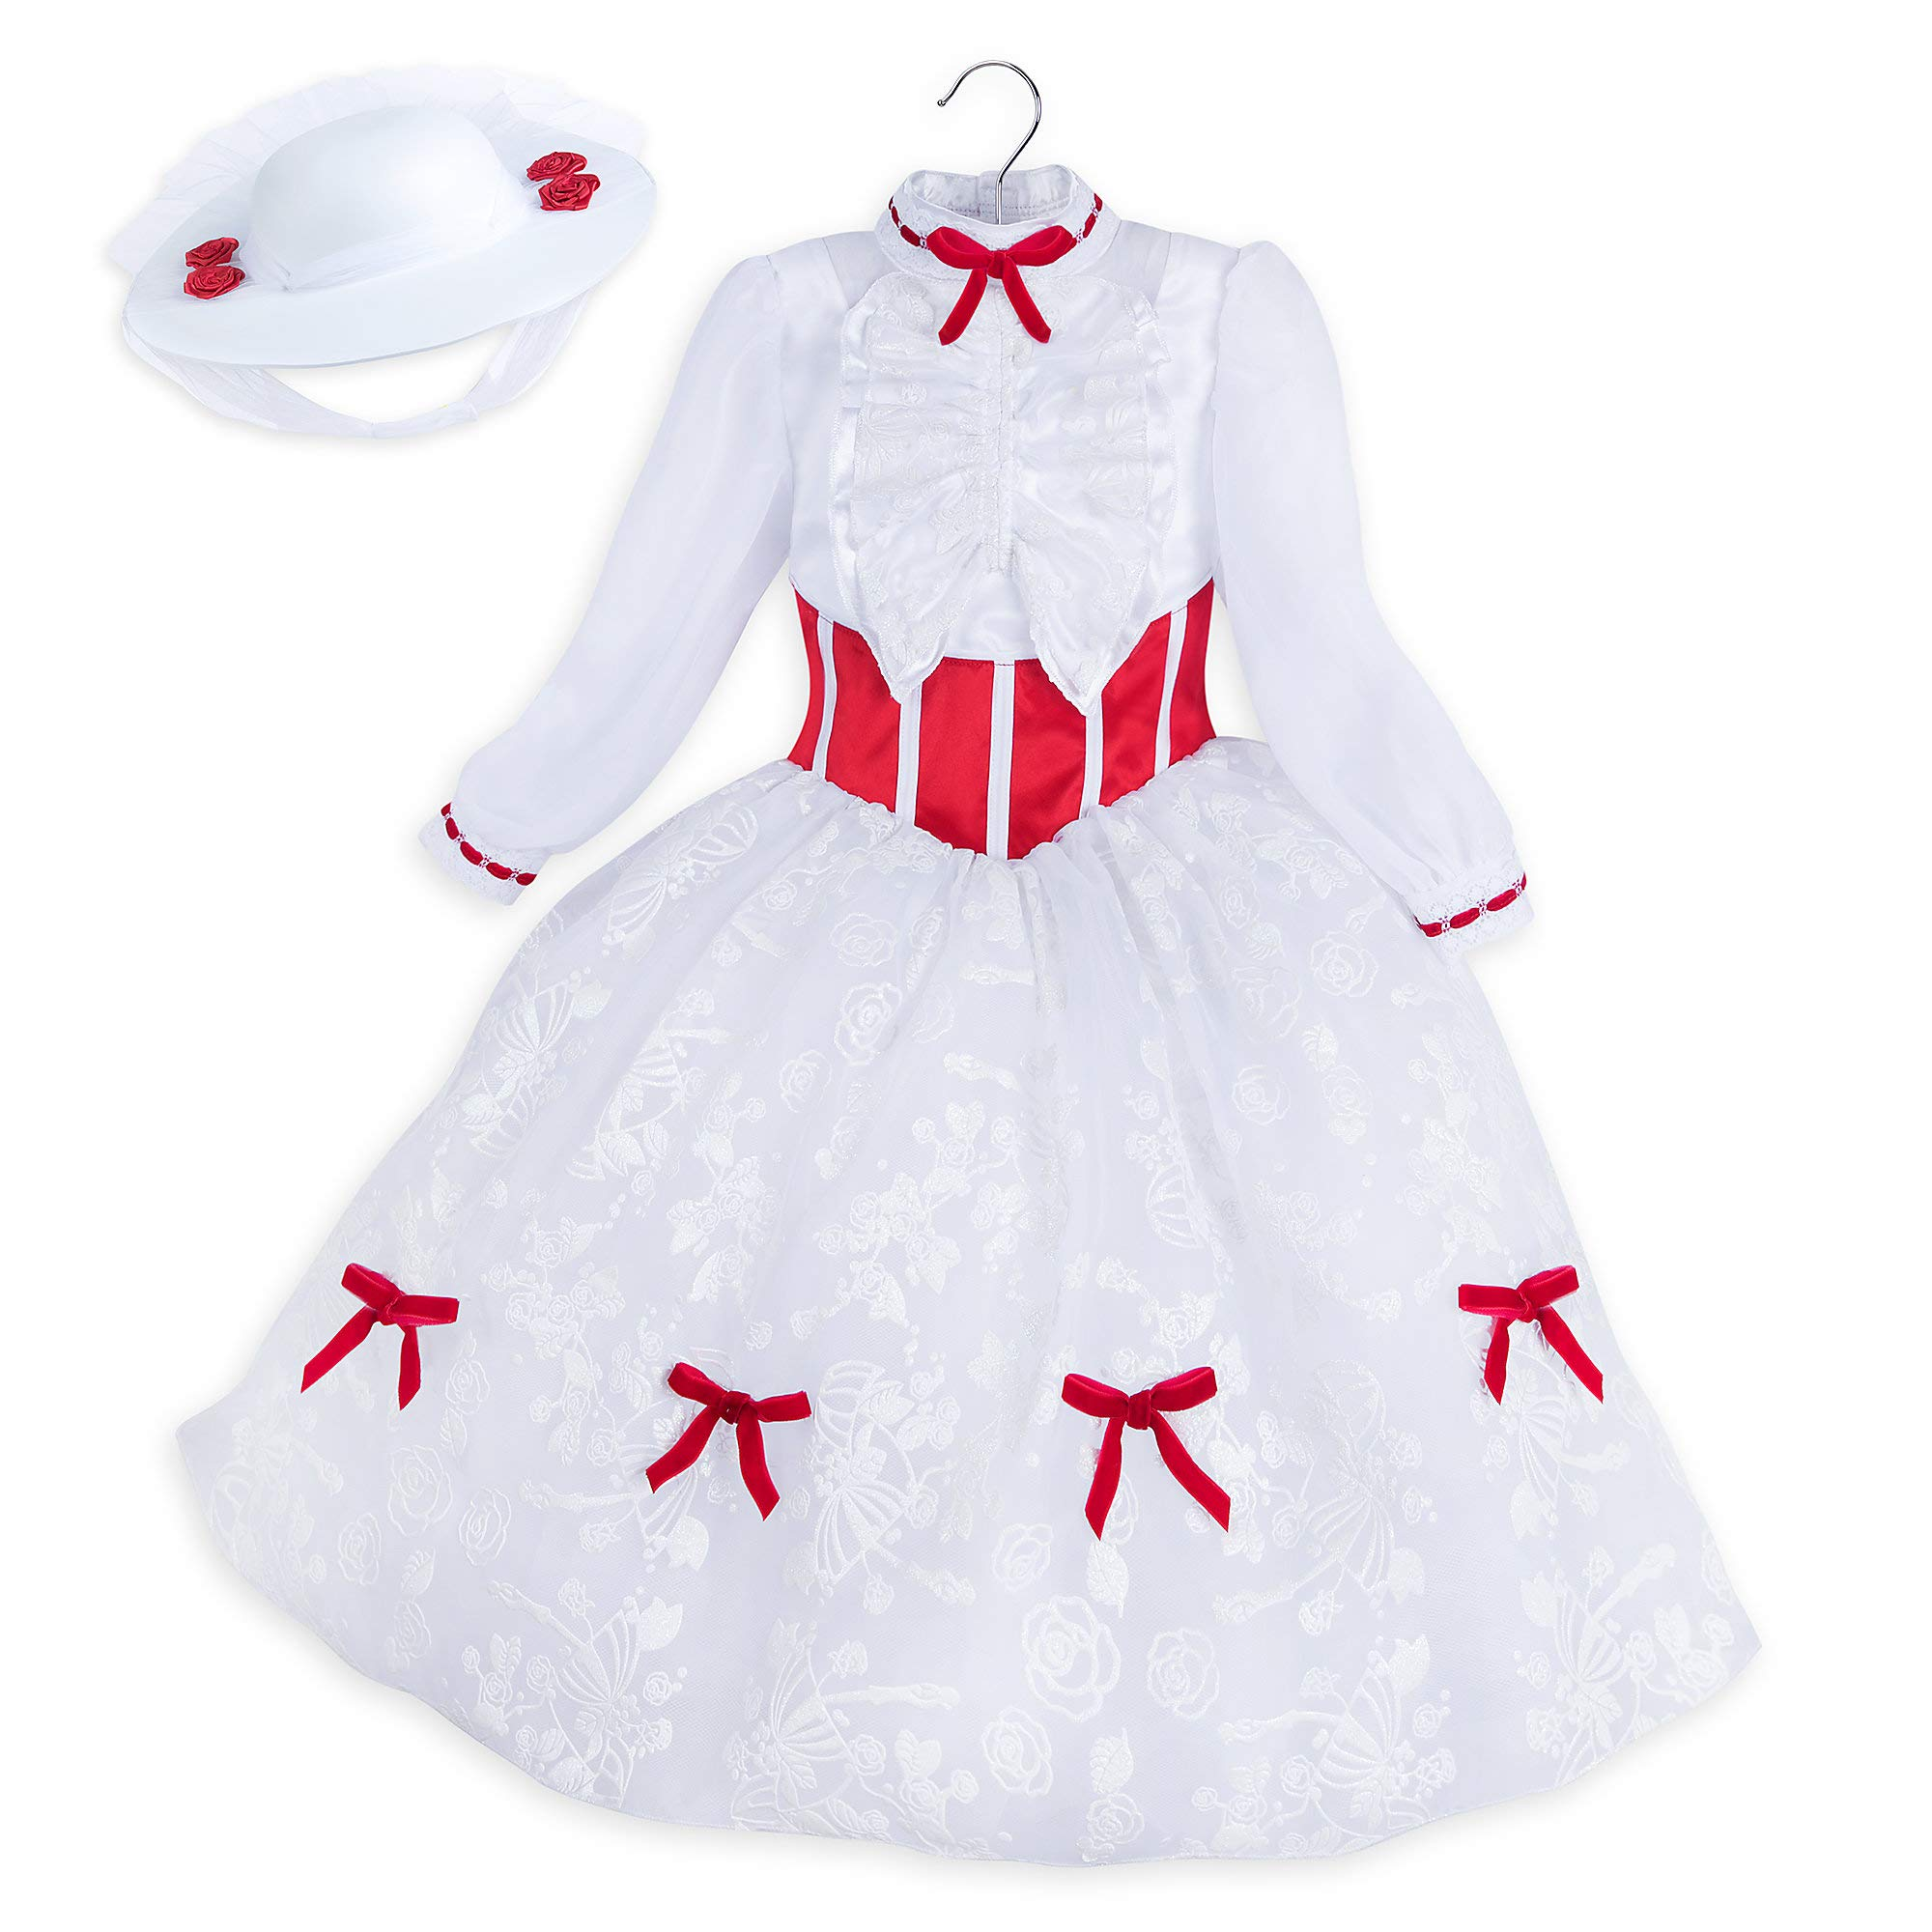 Disney Mary Poppins Costume for Kids Size 7/8 Multi